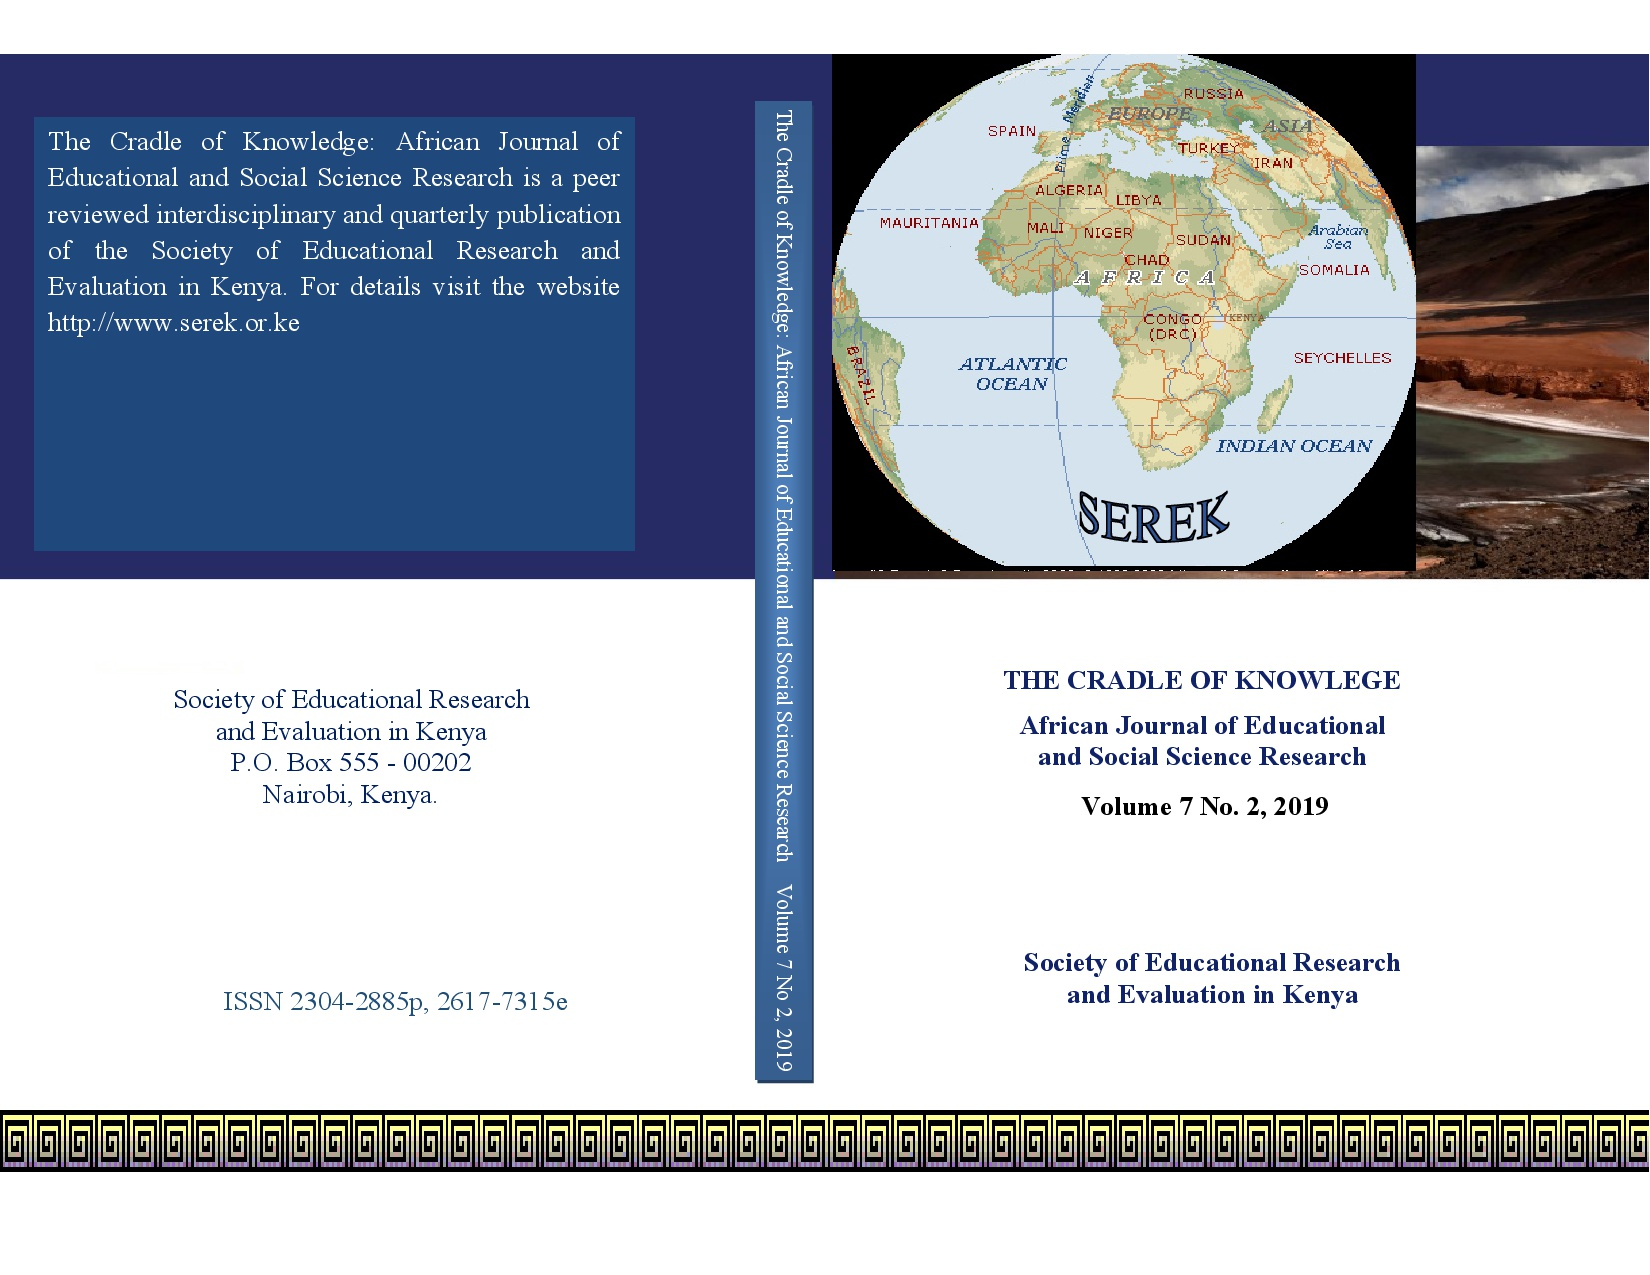 The Cradle of Knowledge: African Journal of Educational and Social Science Research Volume 7 No.2, 2019 ISSN 2304-2885-p, 2617-7315e